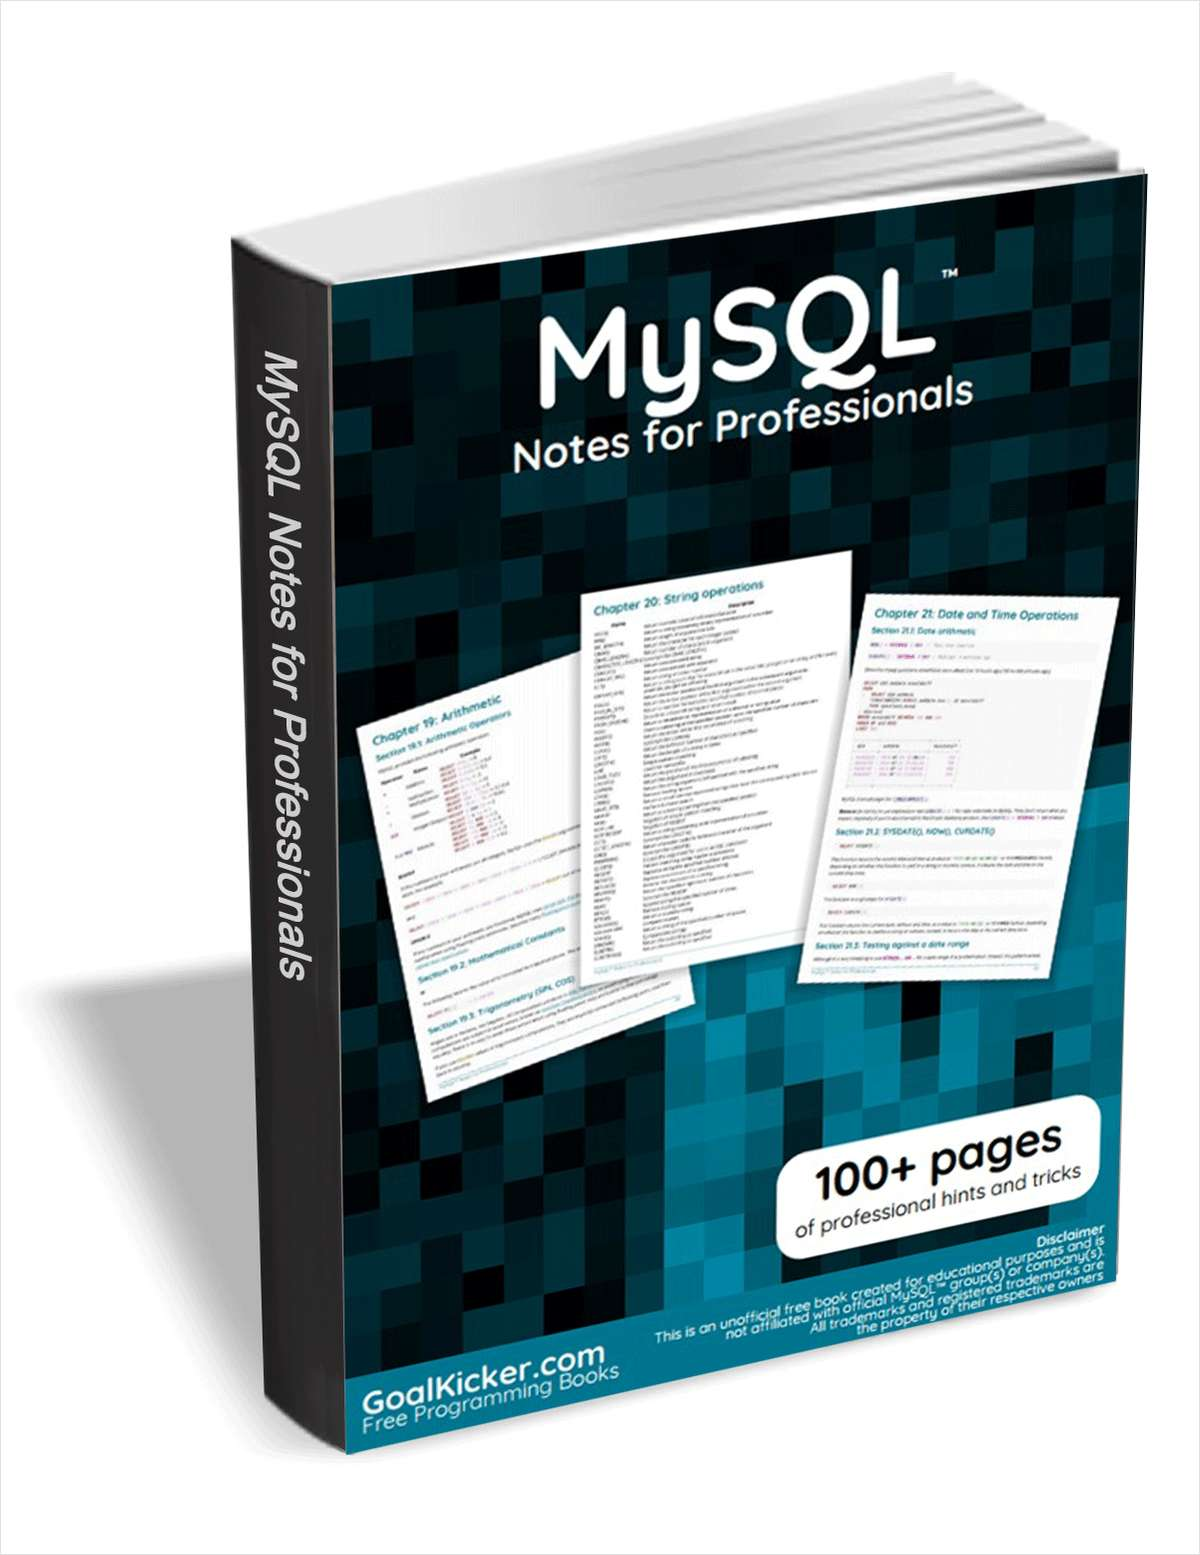 MySQL Notes for Professionals